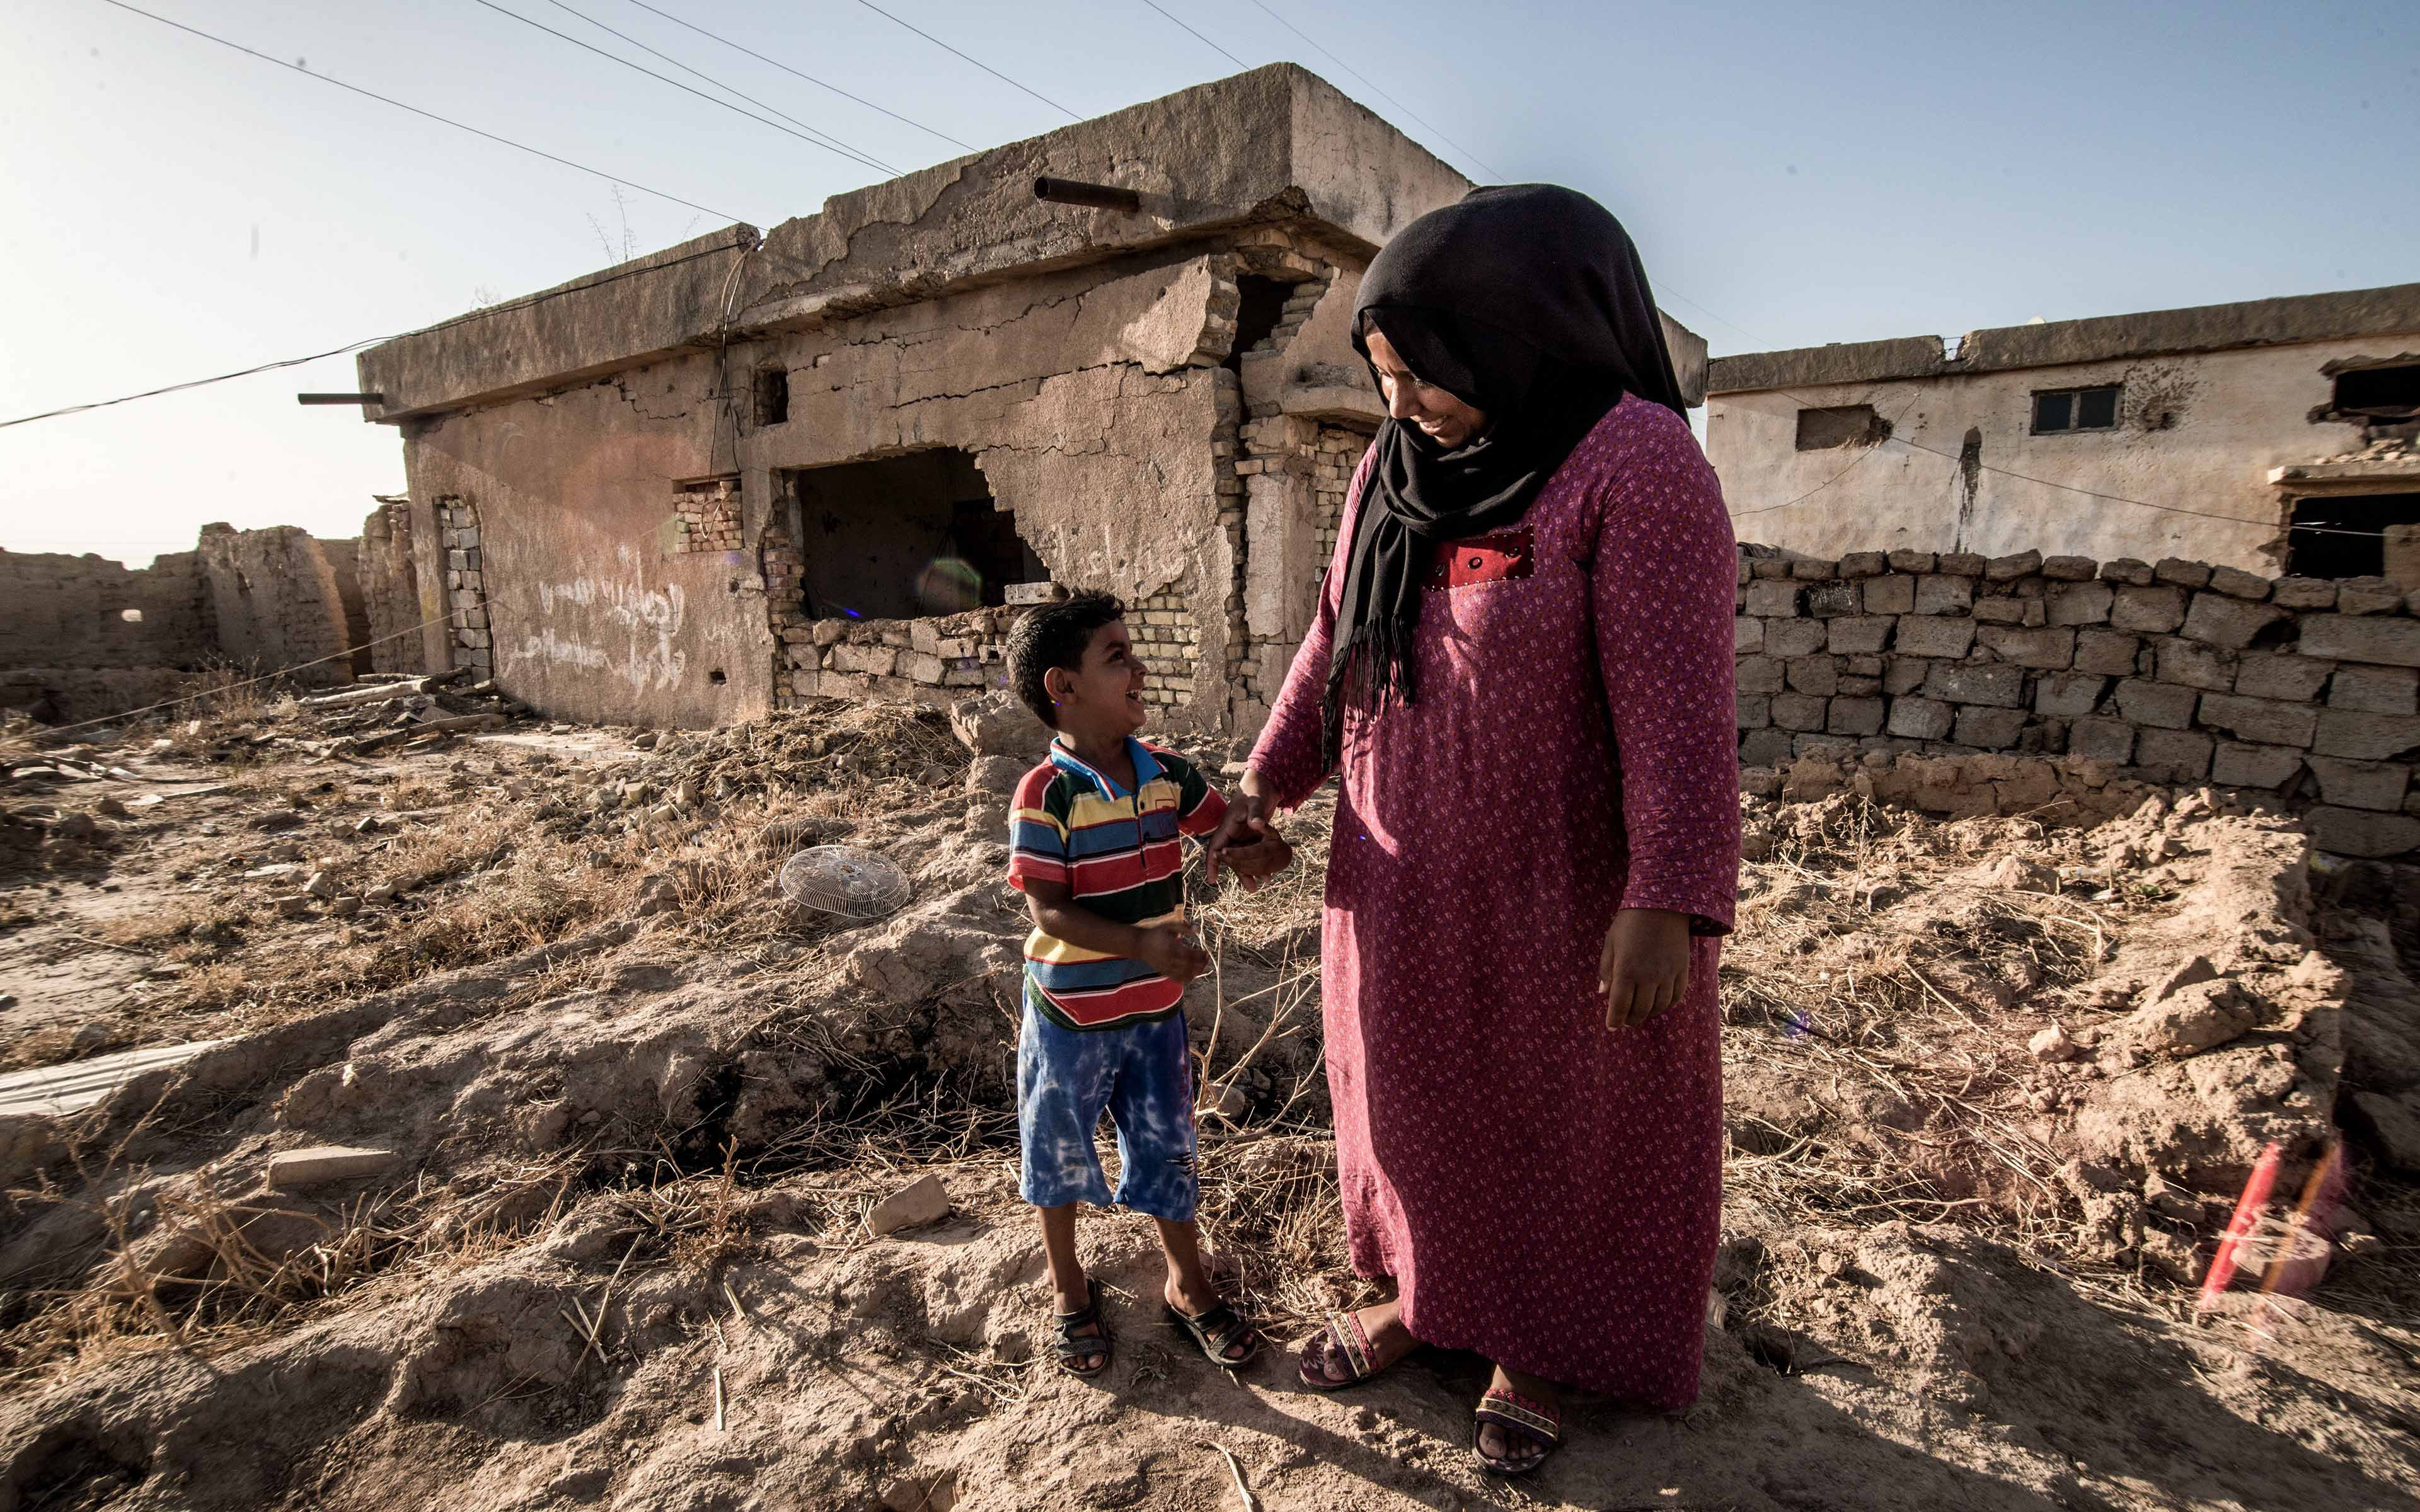 Zahia Hassan, whose name has been changed to protect her identity, talks with her 4-year-old son. The small family has returned to their Iraqi village after it was reclaimed from ISIS.